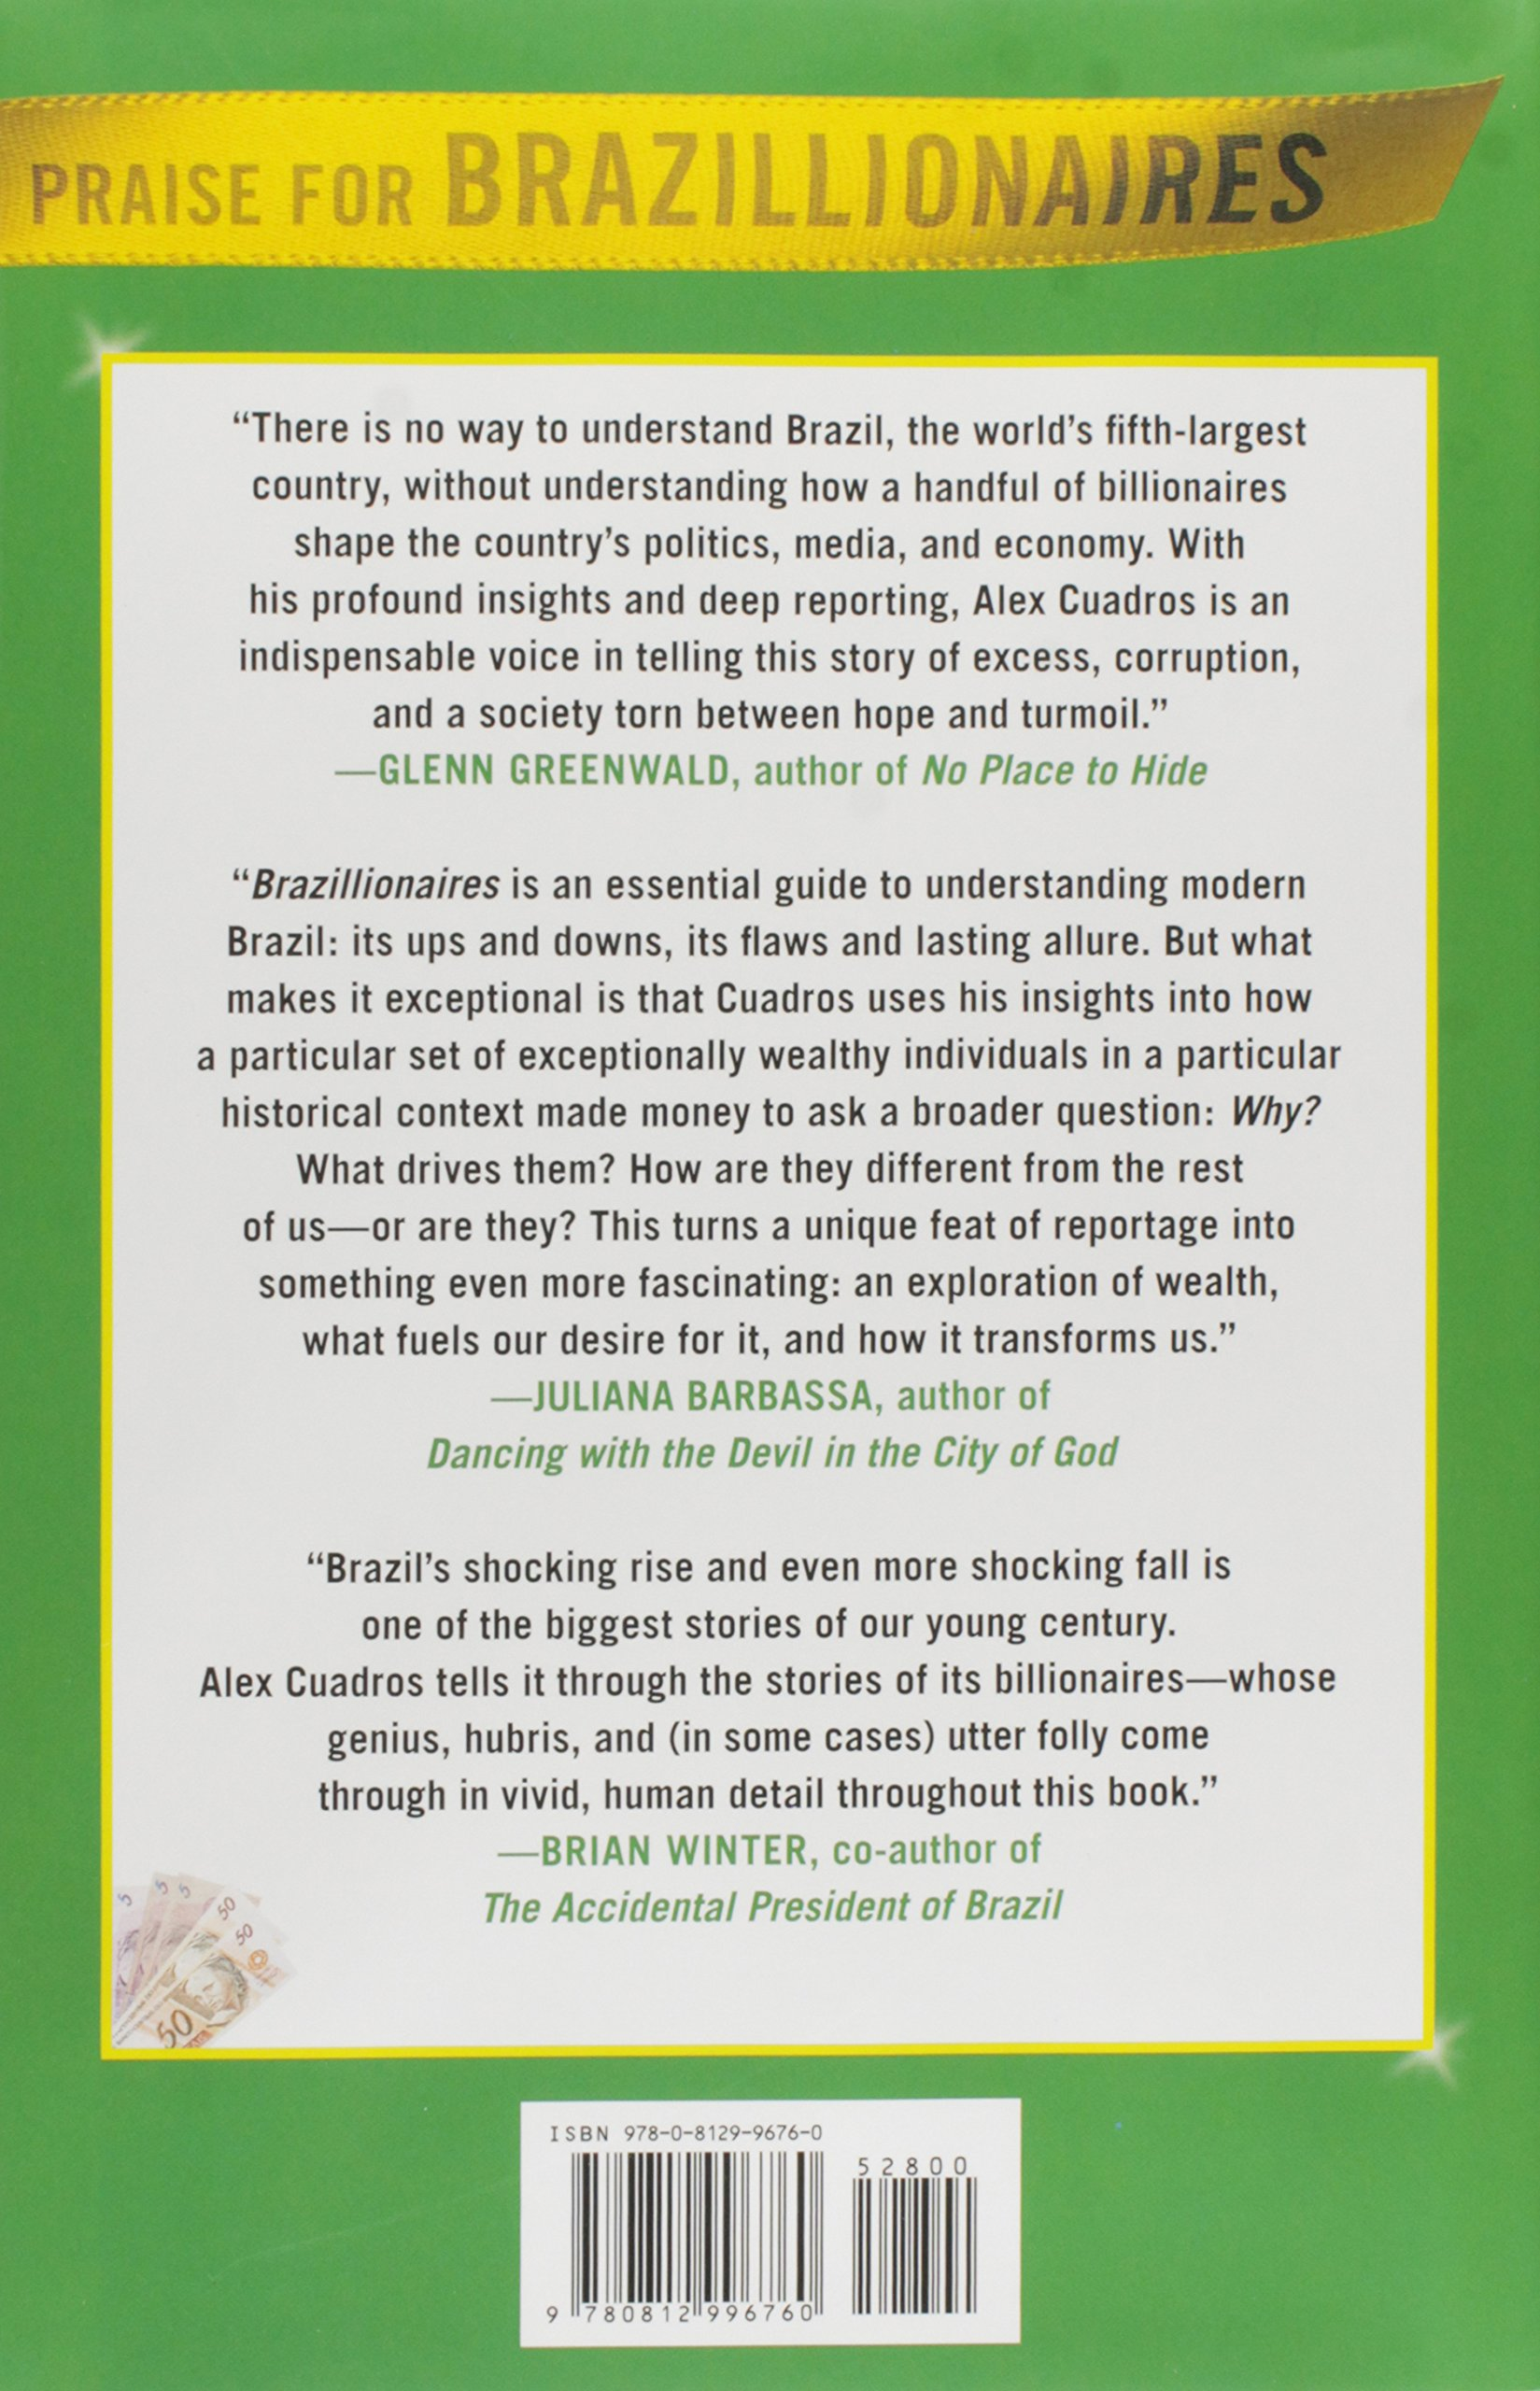 Brazillionaires: Wealth, Power, Decadence, and Hope in an